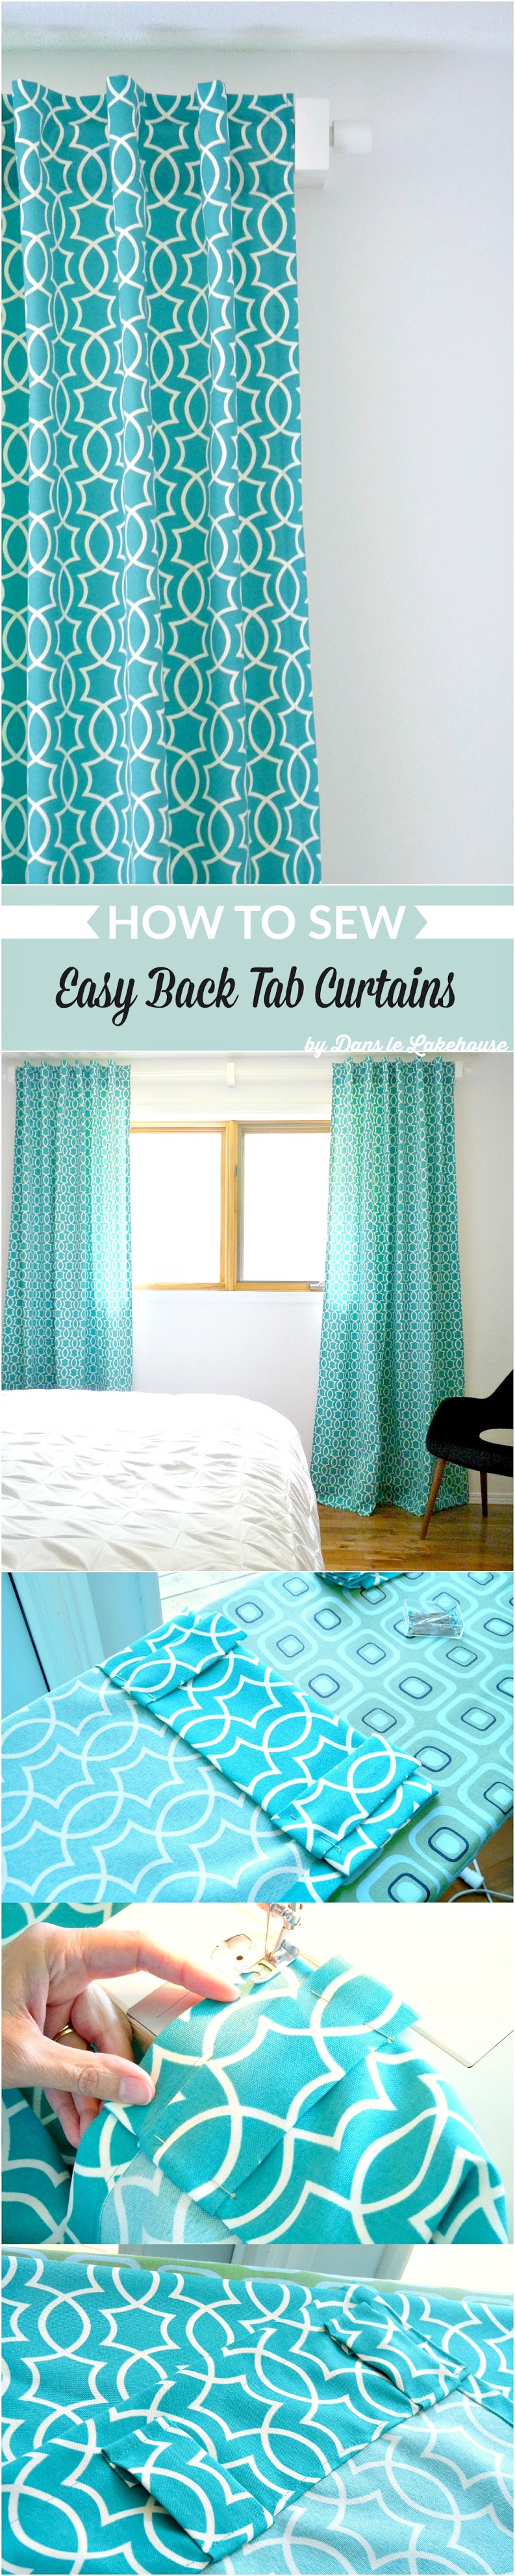 How to sew easy back tab curtains